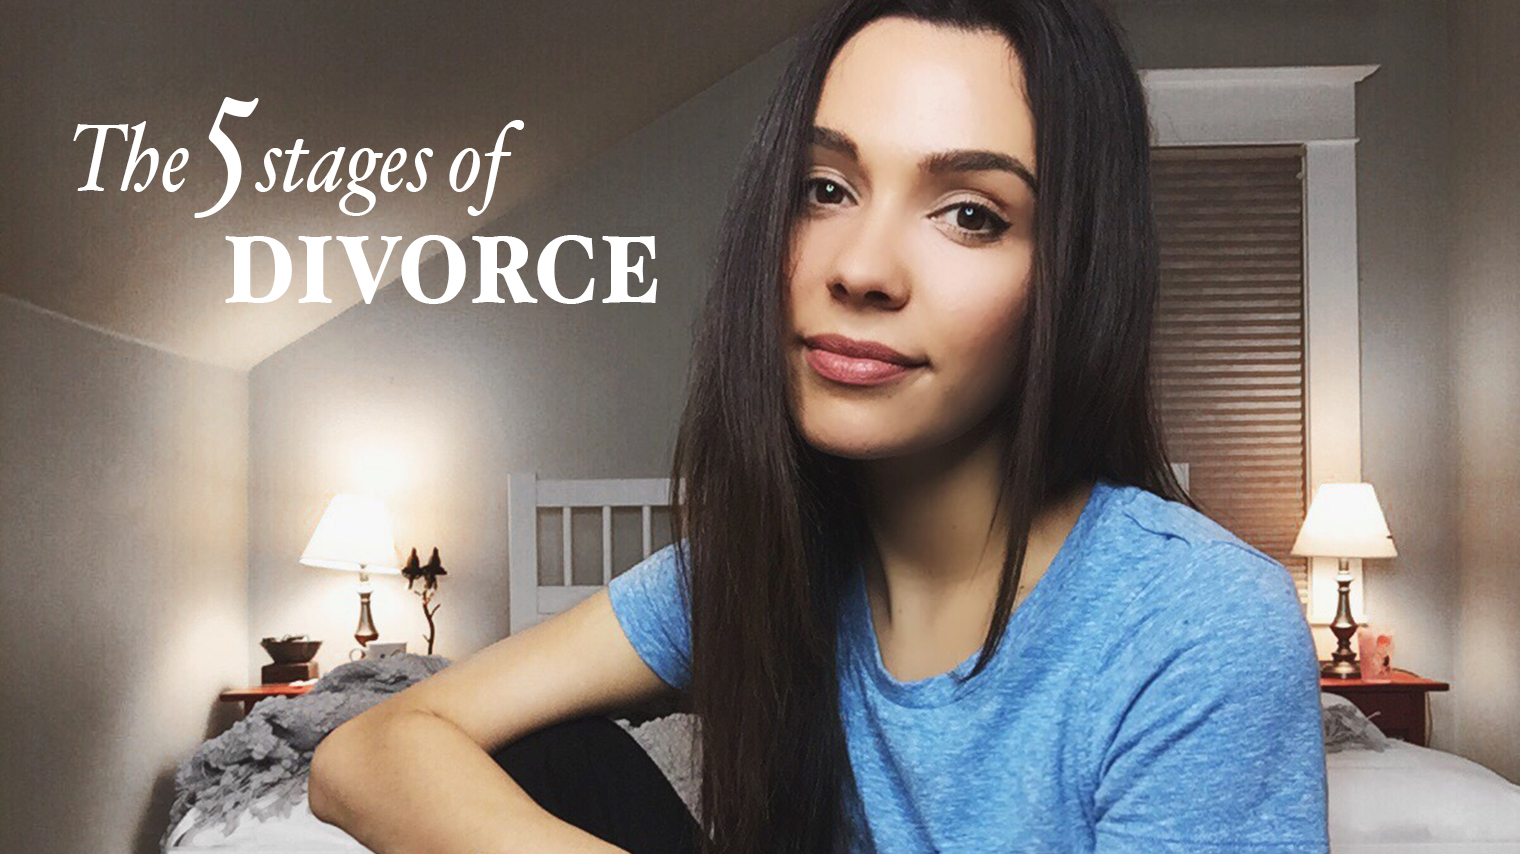 5 stages of divorce